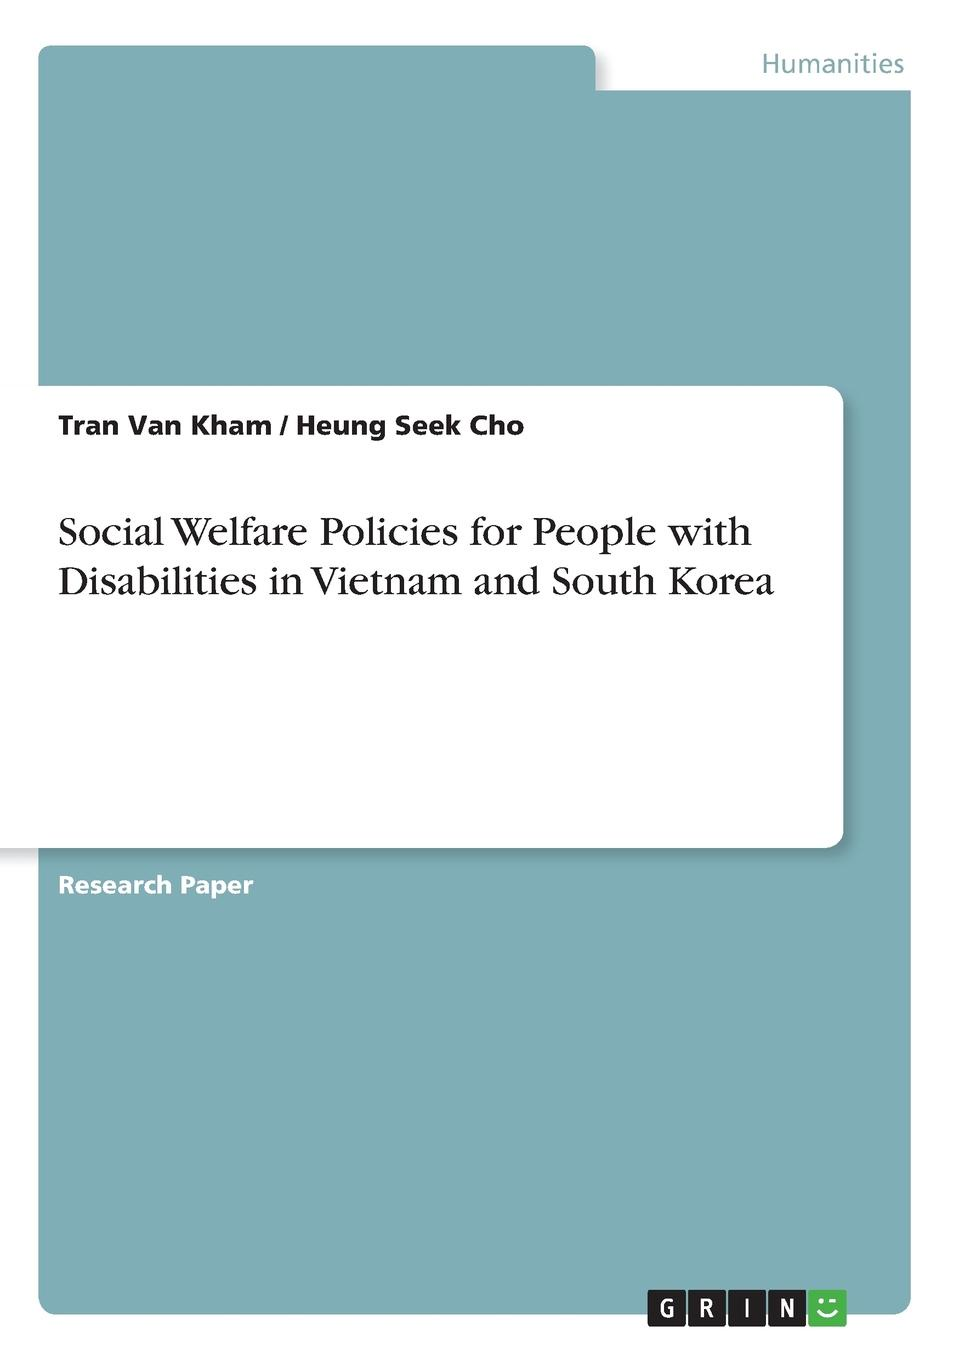 Tran Van Kham, Heung Seek Cho Social Welfare Policies for People with Disabilities in Vietnam and South Korea human rights and people with disability